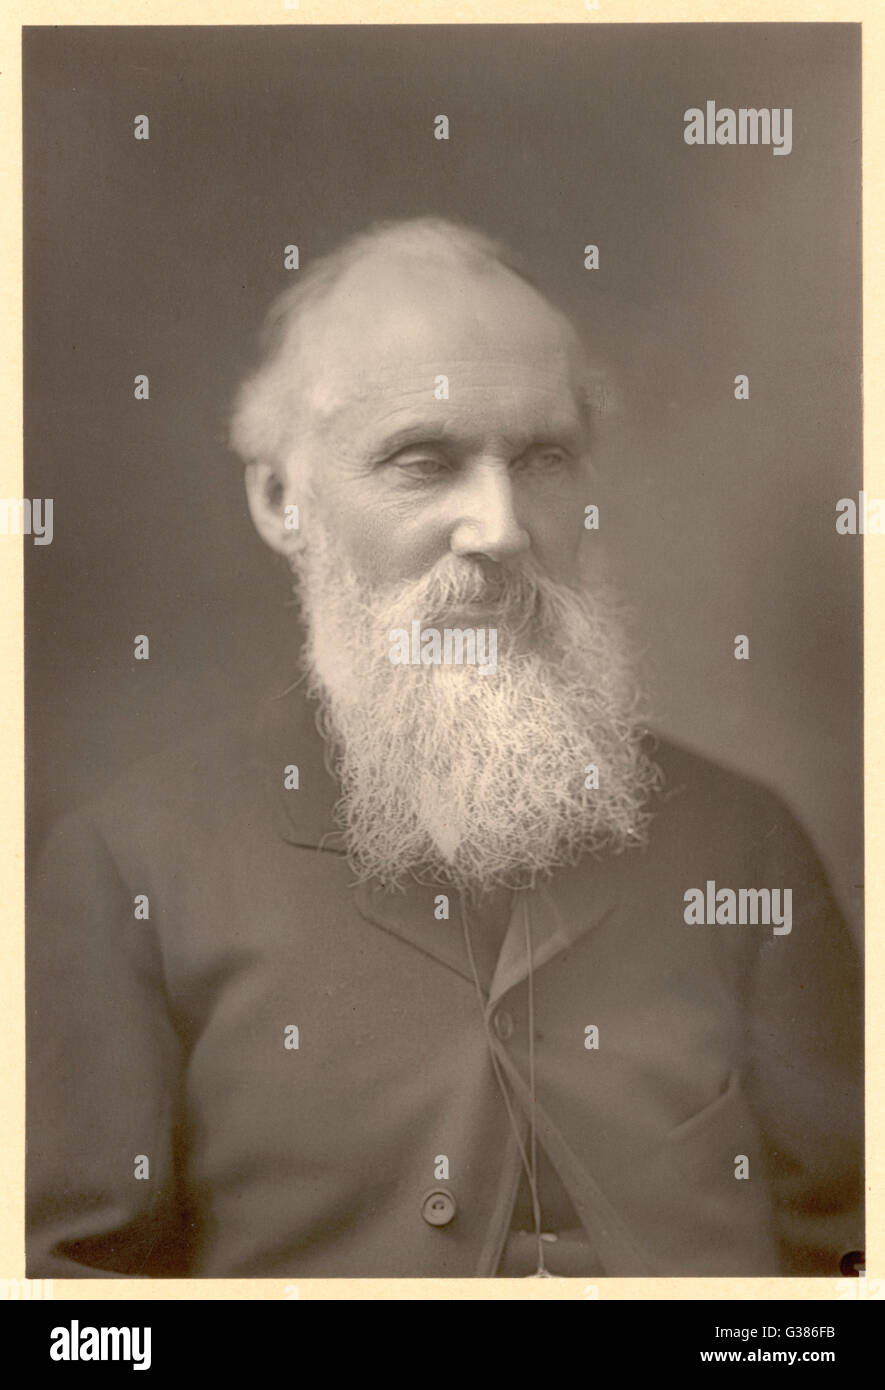 WILLIAM THOMSON, 1ST BARON KELVIN OF LARGS  Mathematician and physicist       Date: 1824 - 1907 - Stock Image